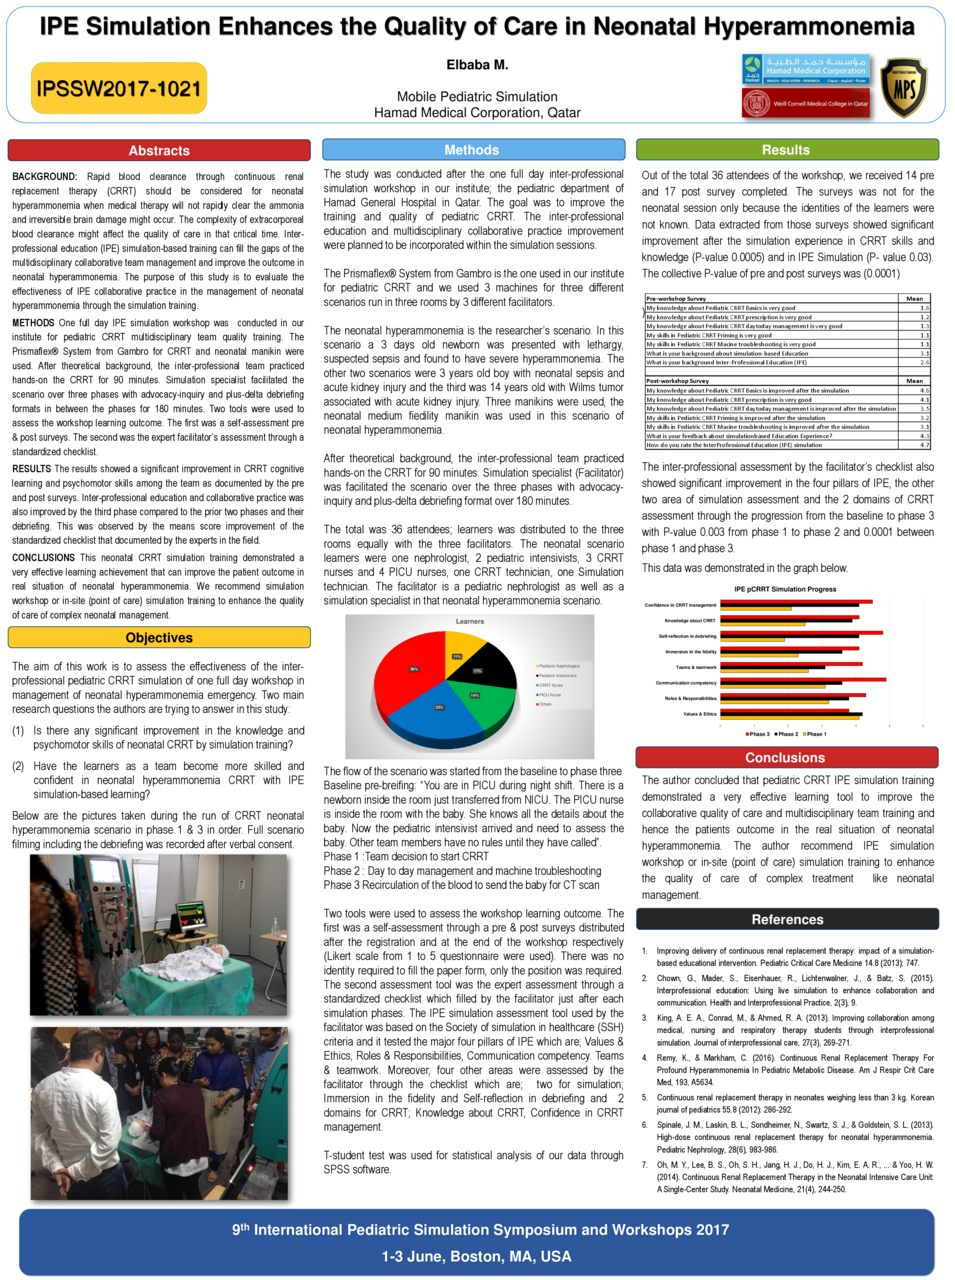 Preview_153293503c9111e7b8ee6ff869d3d30c-po_06-5-ipssw2017_poster_neonatal_hyperammonemia_layout